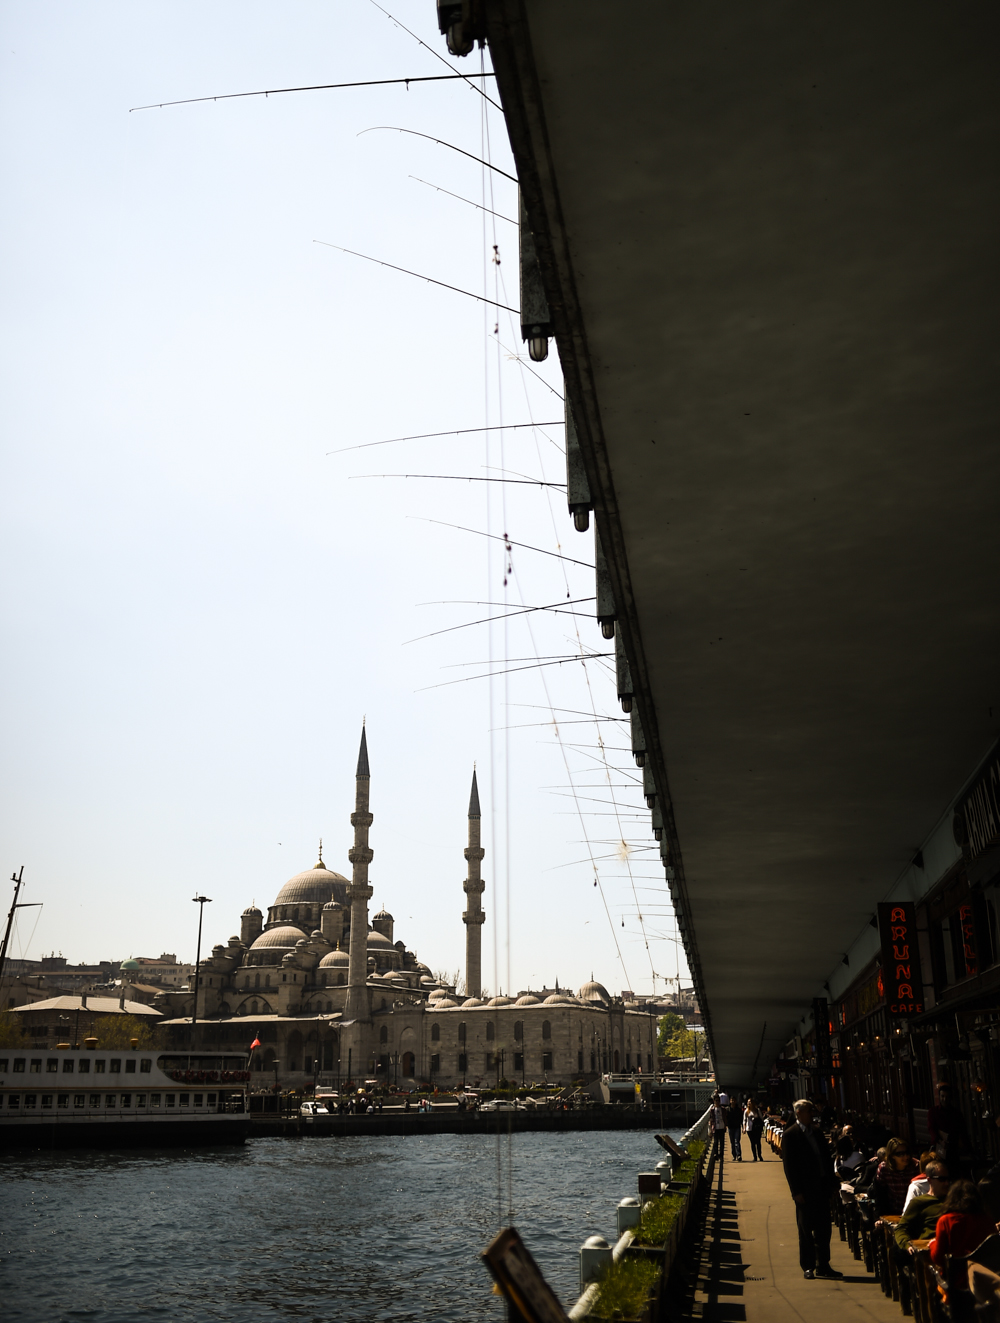 Istanbul Taksim and mosque 2014 day 2 LR-69.jpg